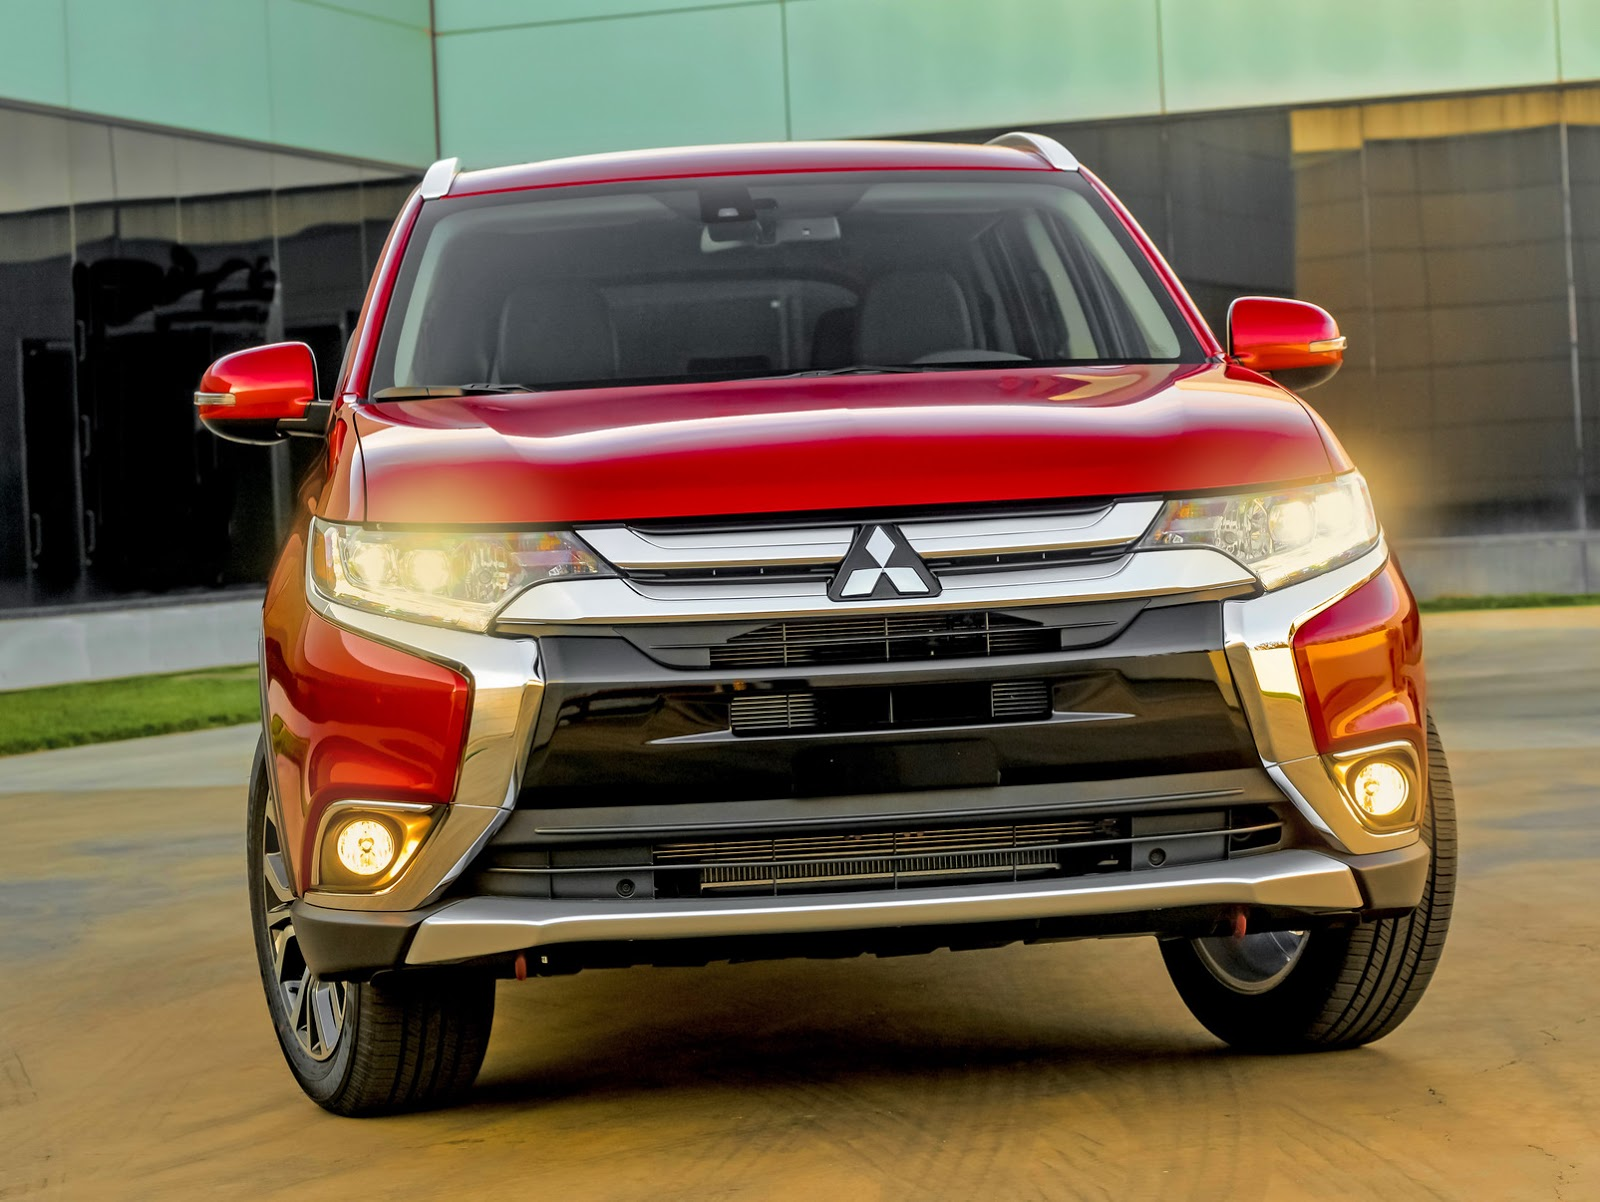 Mitsubishi Outlander facelift photo gallery | Car Gallery | SUV/Crossovers | Autocar India